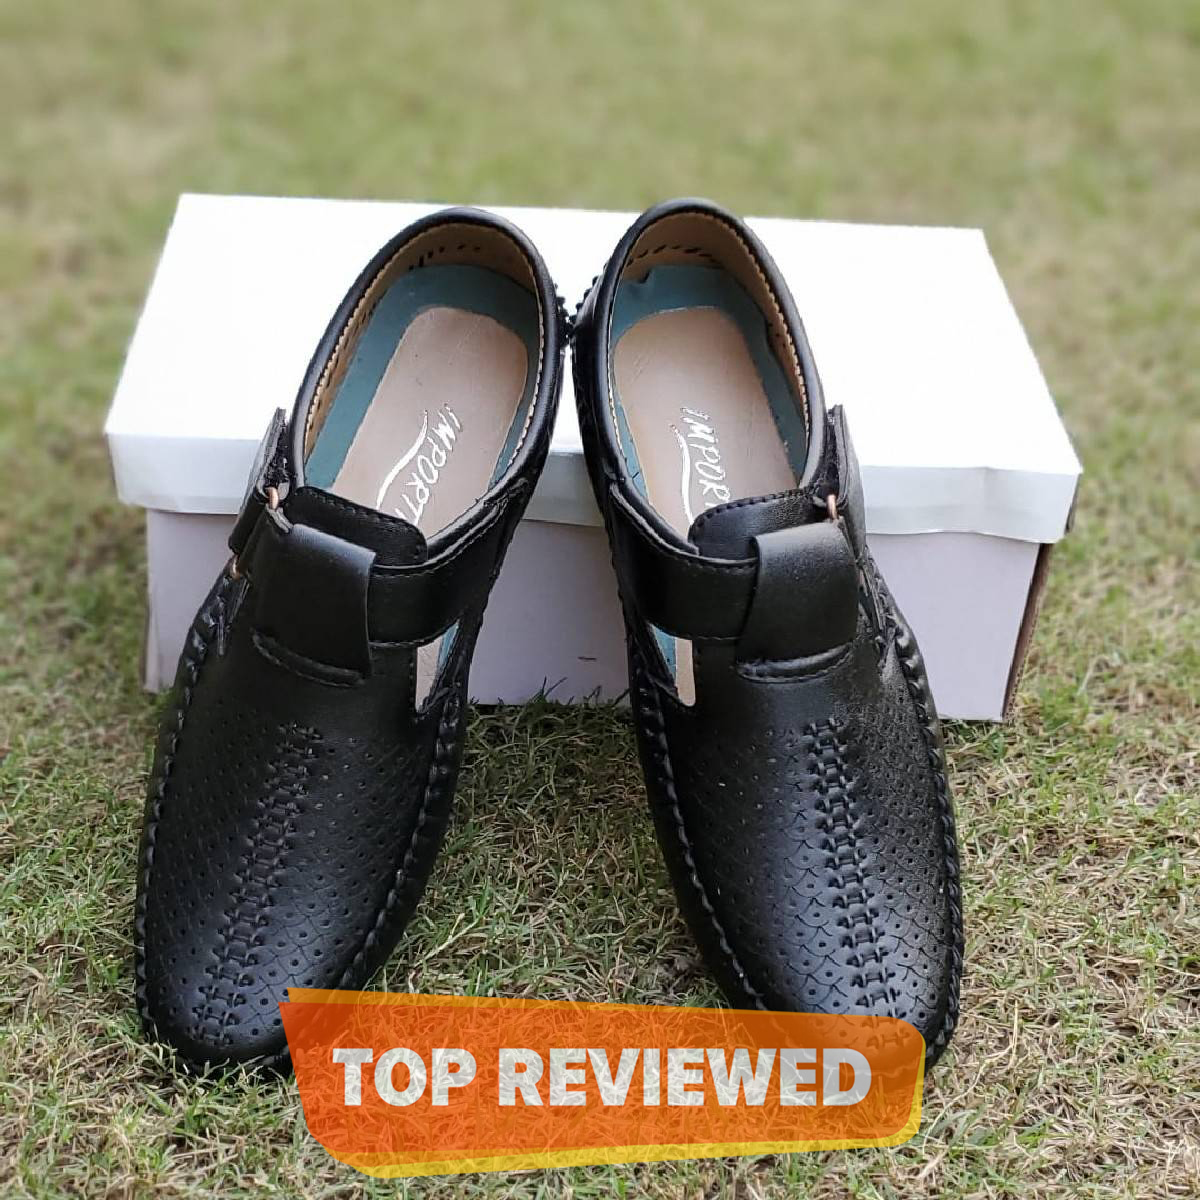 Black Synthetic Leather Driving Sandals For Men By Importia